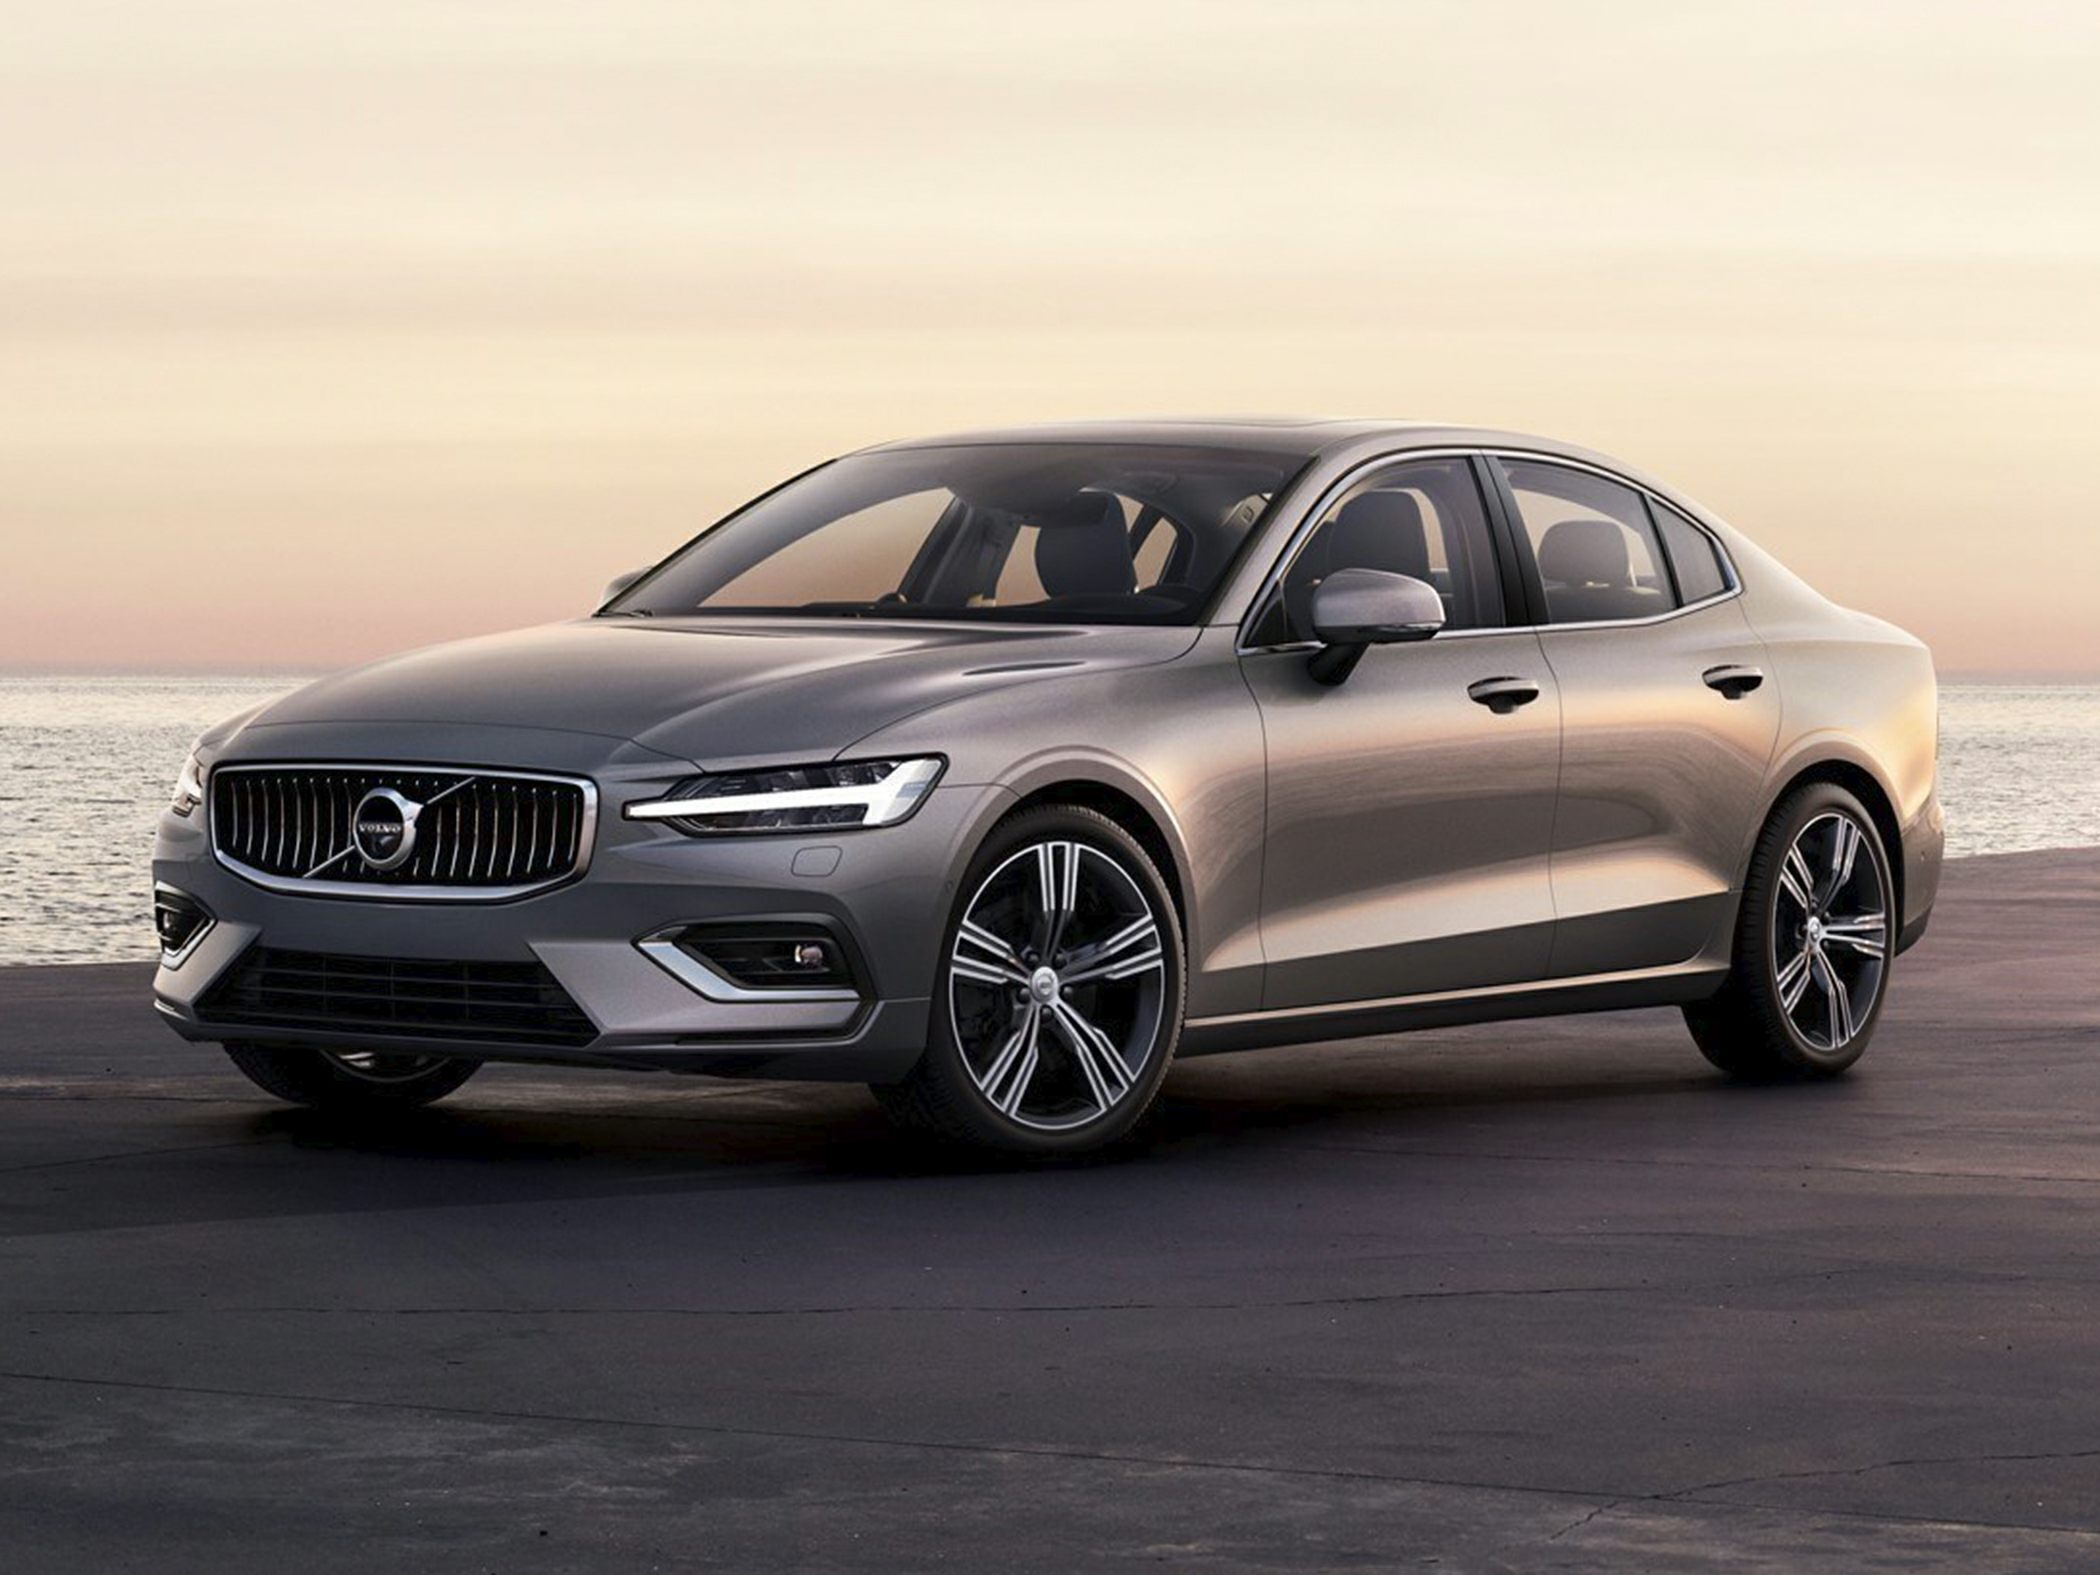 There Are New Safety Innovations And A More Advanced Infotainment System Than The Old S60 While Styling Elements Reminiscent Of Other Recently Launched